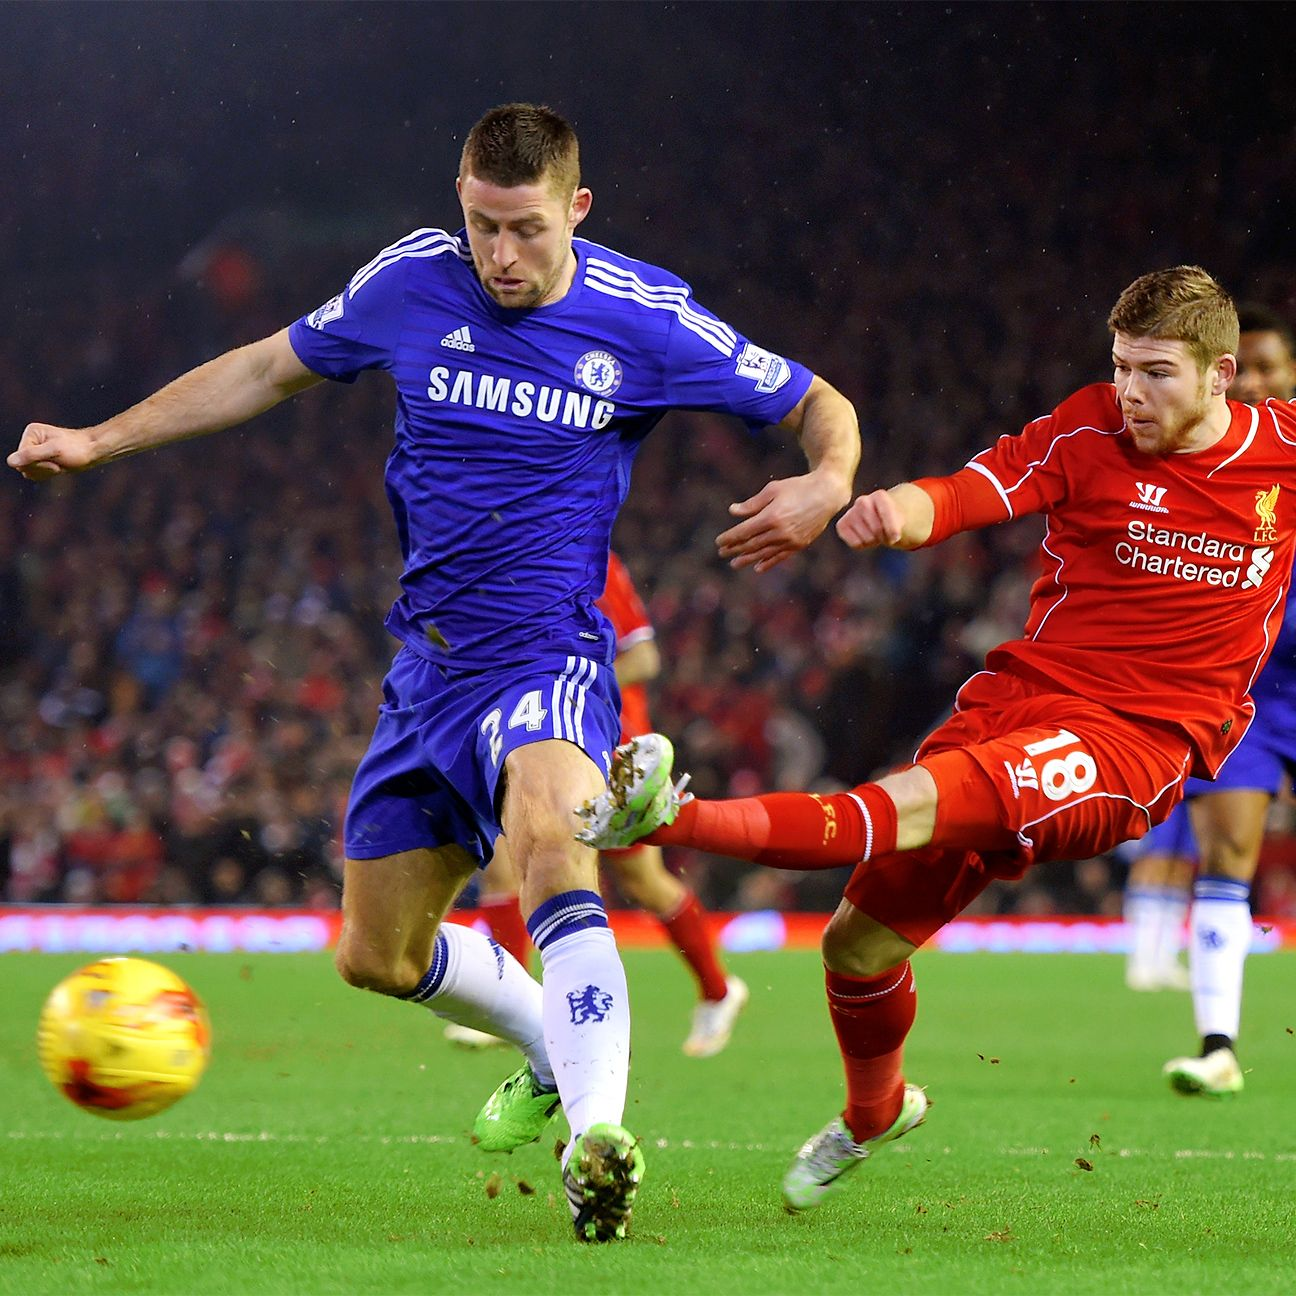 Gary Cahill and the Chelsea defence put in a workmanlike effort against Liverpool on Tuesday.